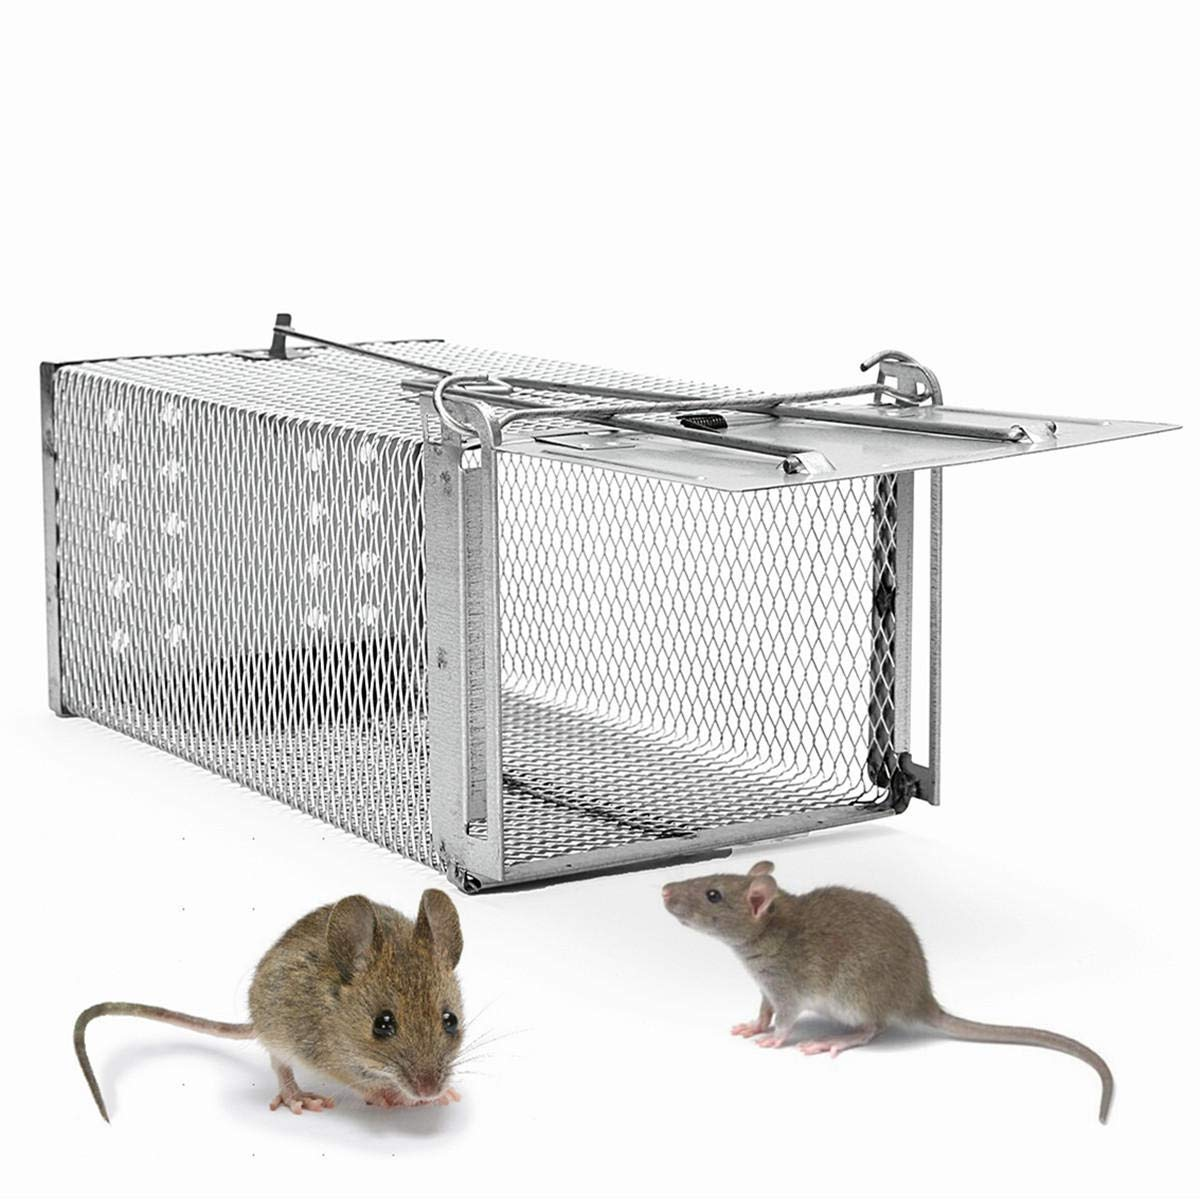 Cheap Large Rat Cage, find Large Rat Cage deals on line at